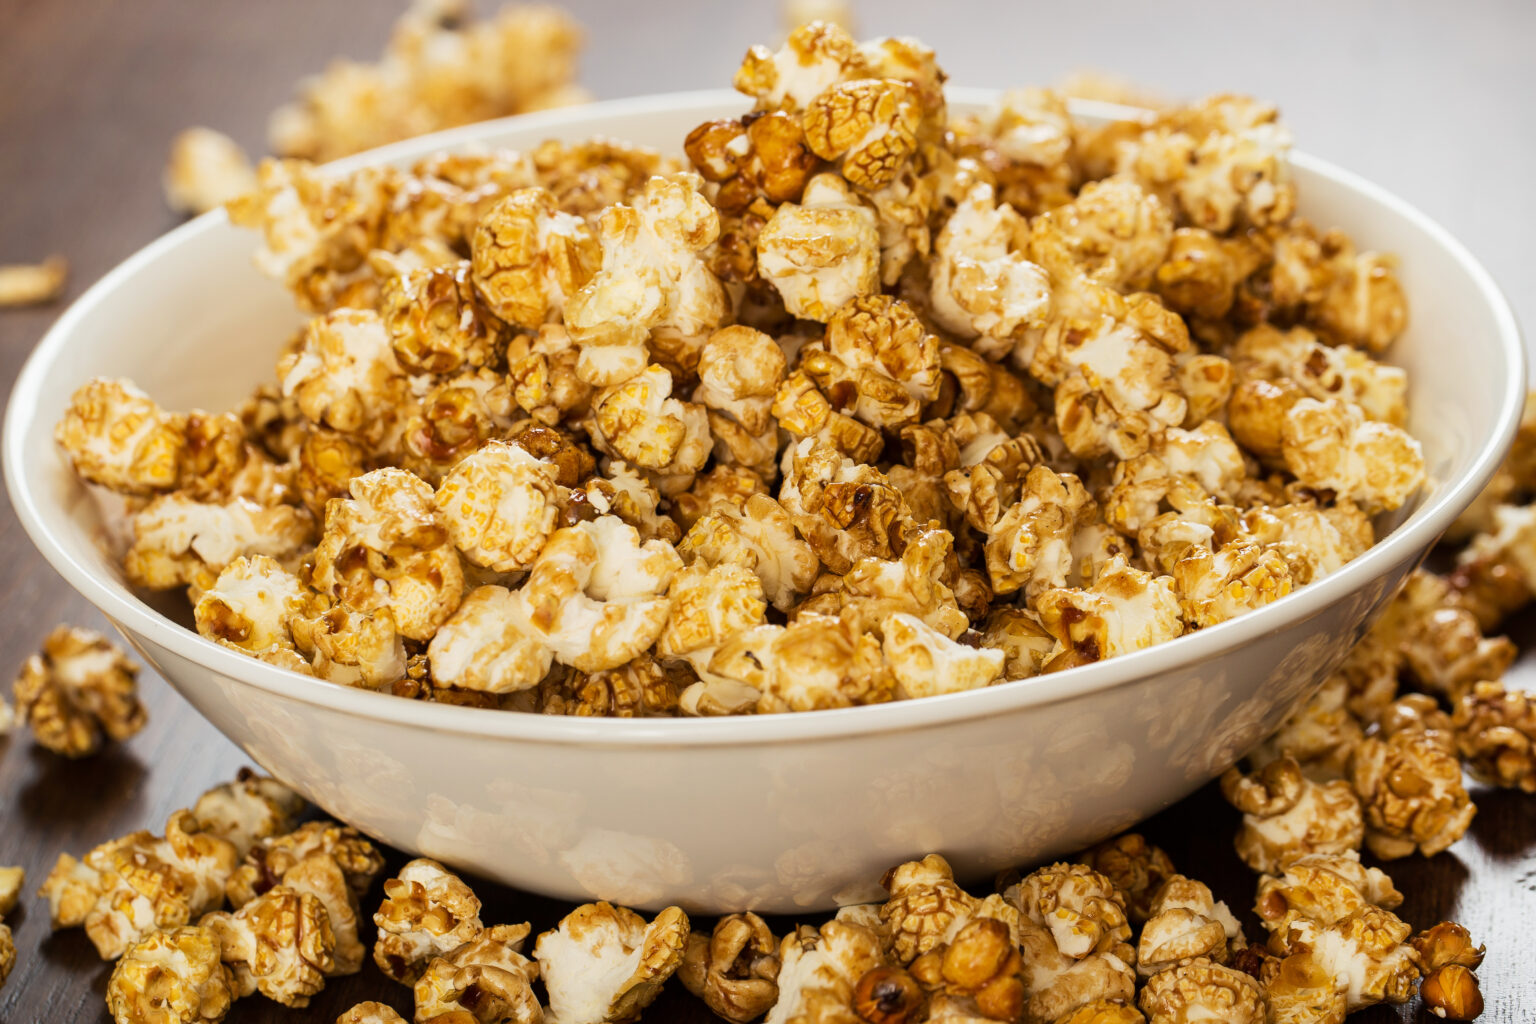 Cinema. Delicious popcorn on the table